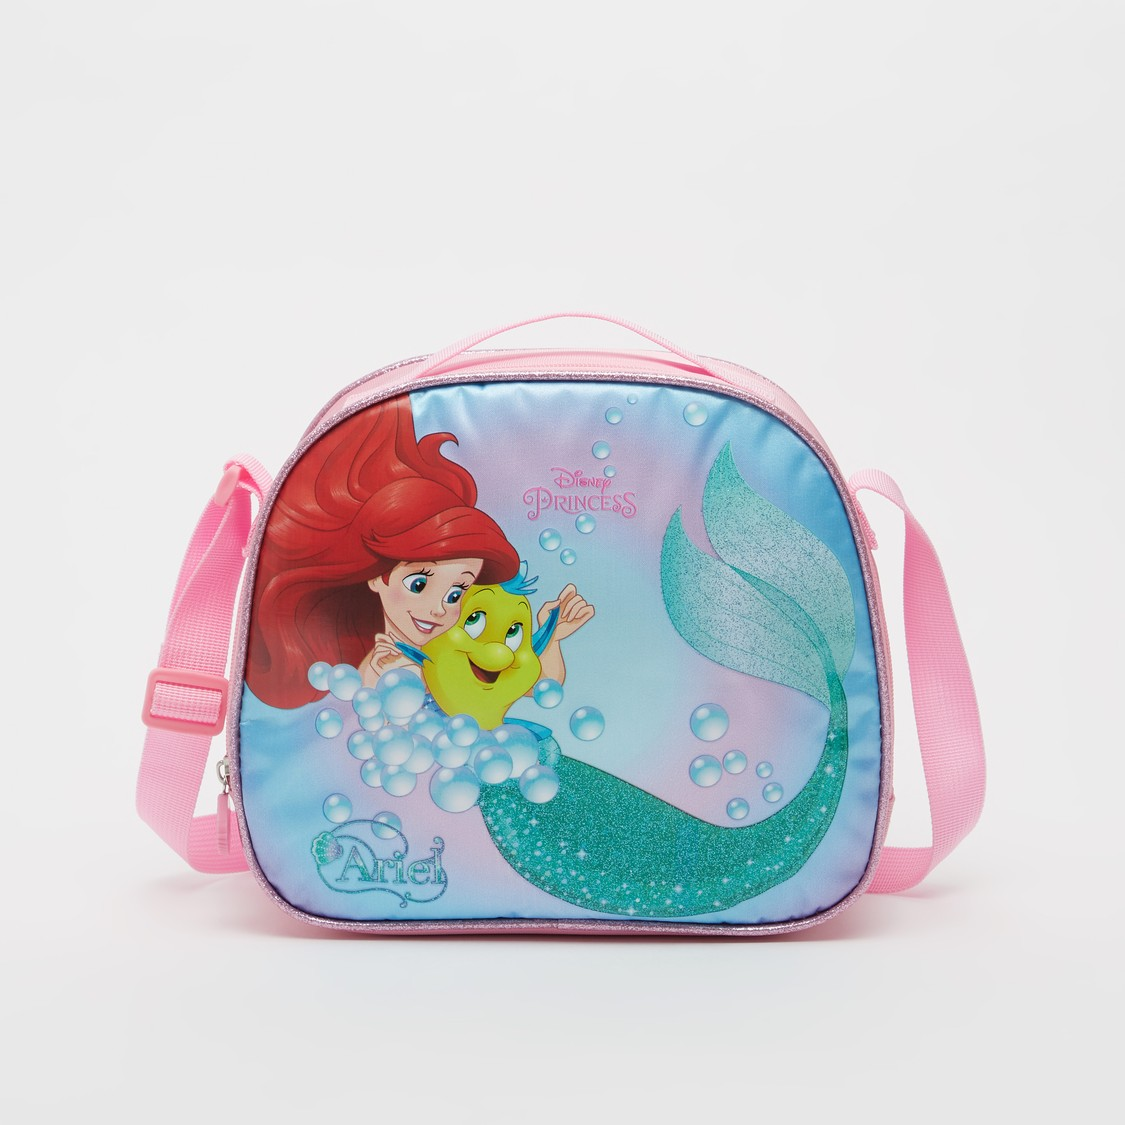 Princess Print Lunch Bag with Adjustable Strap and Zip Closure